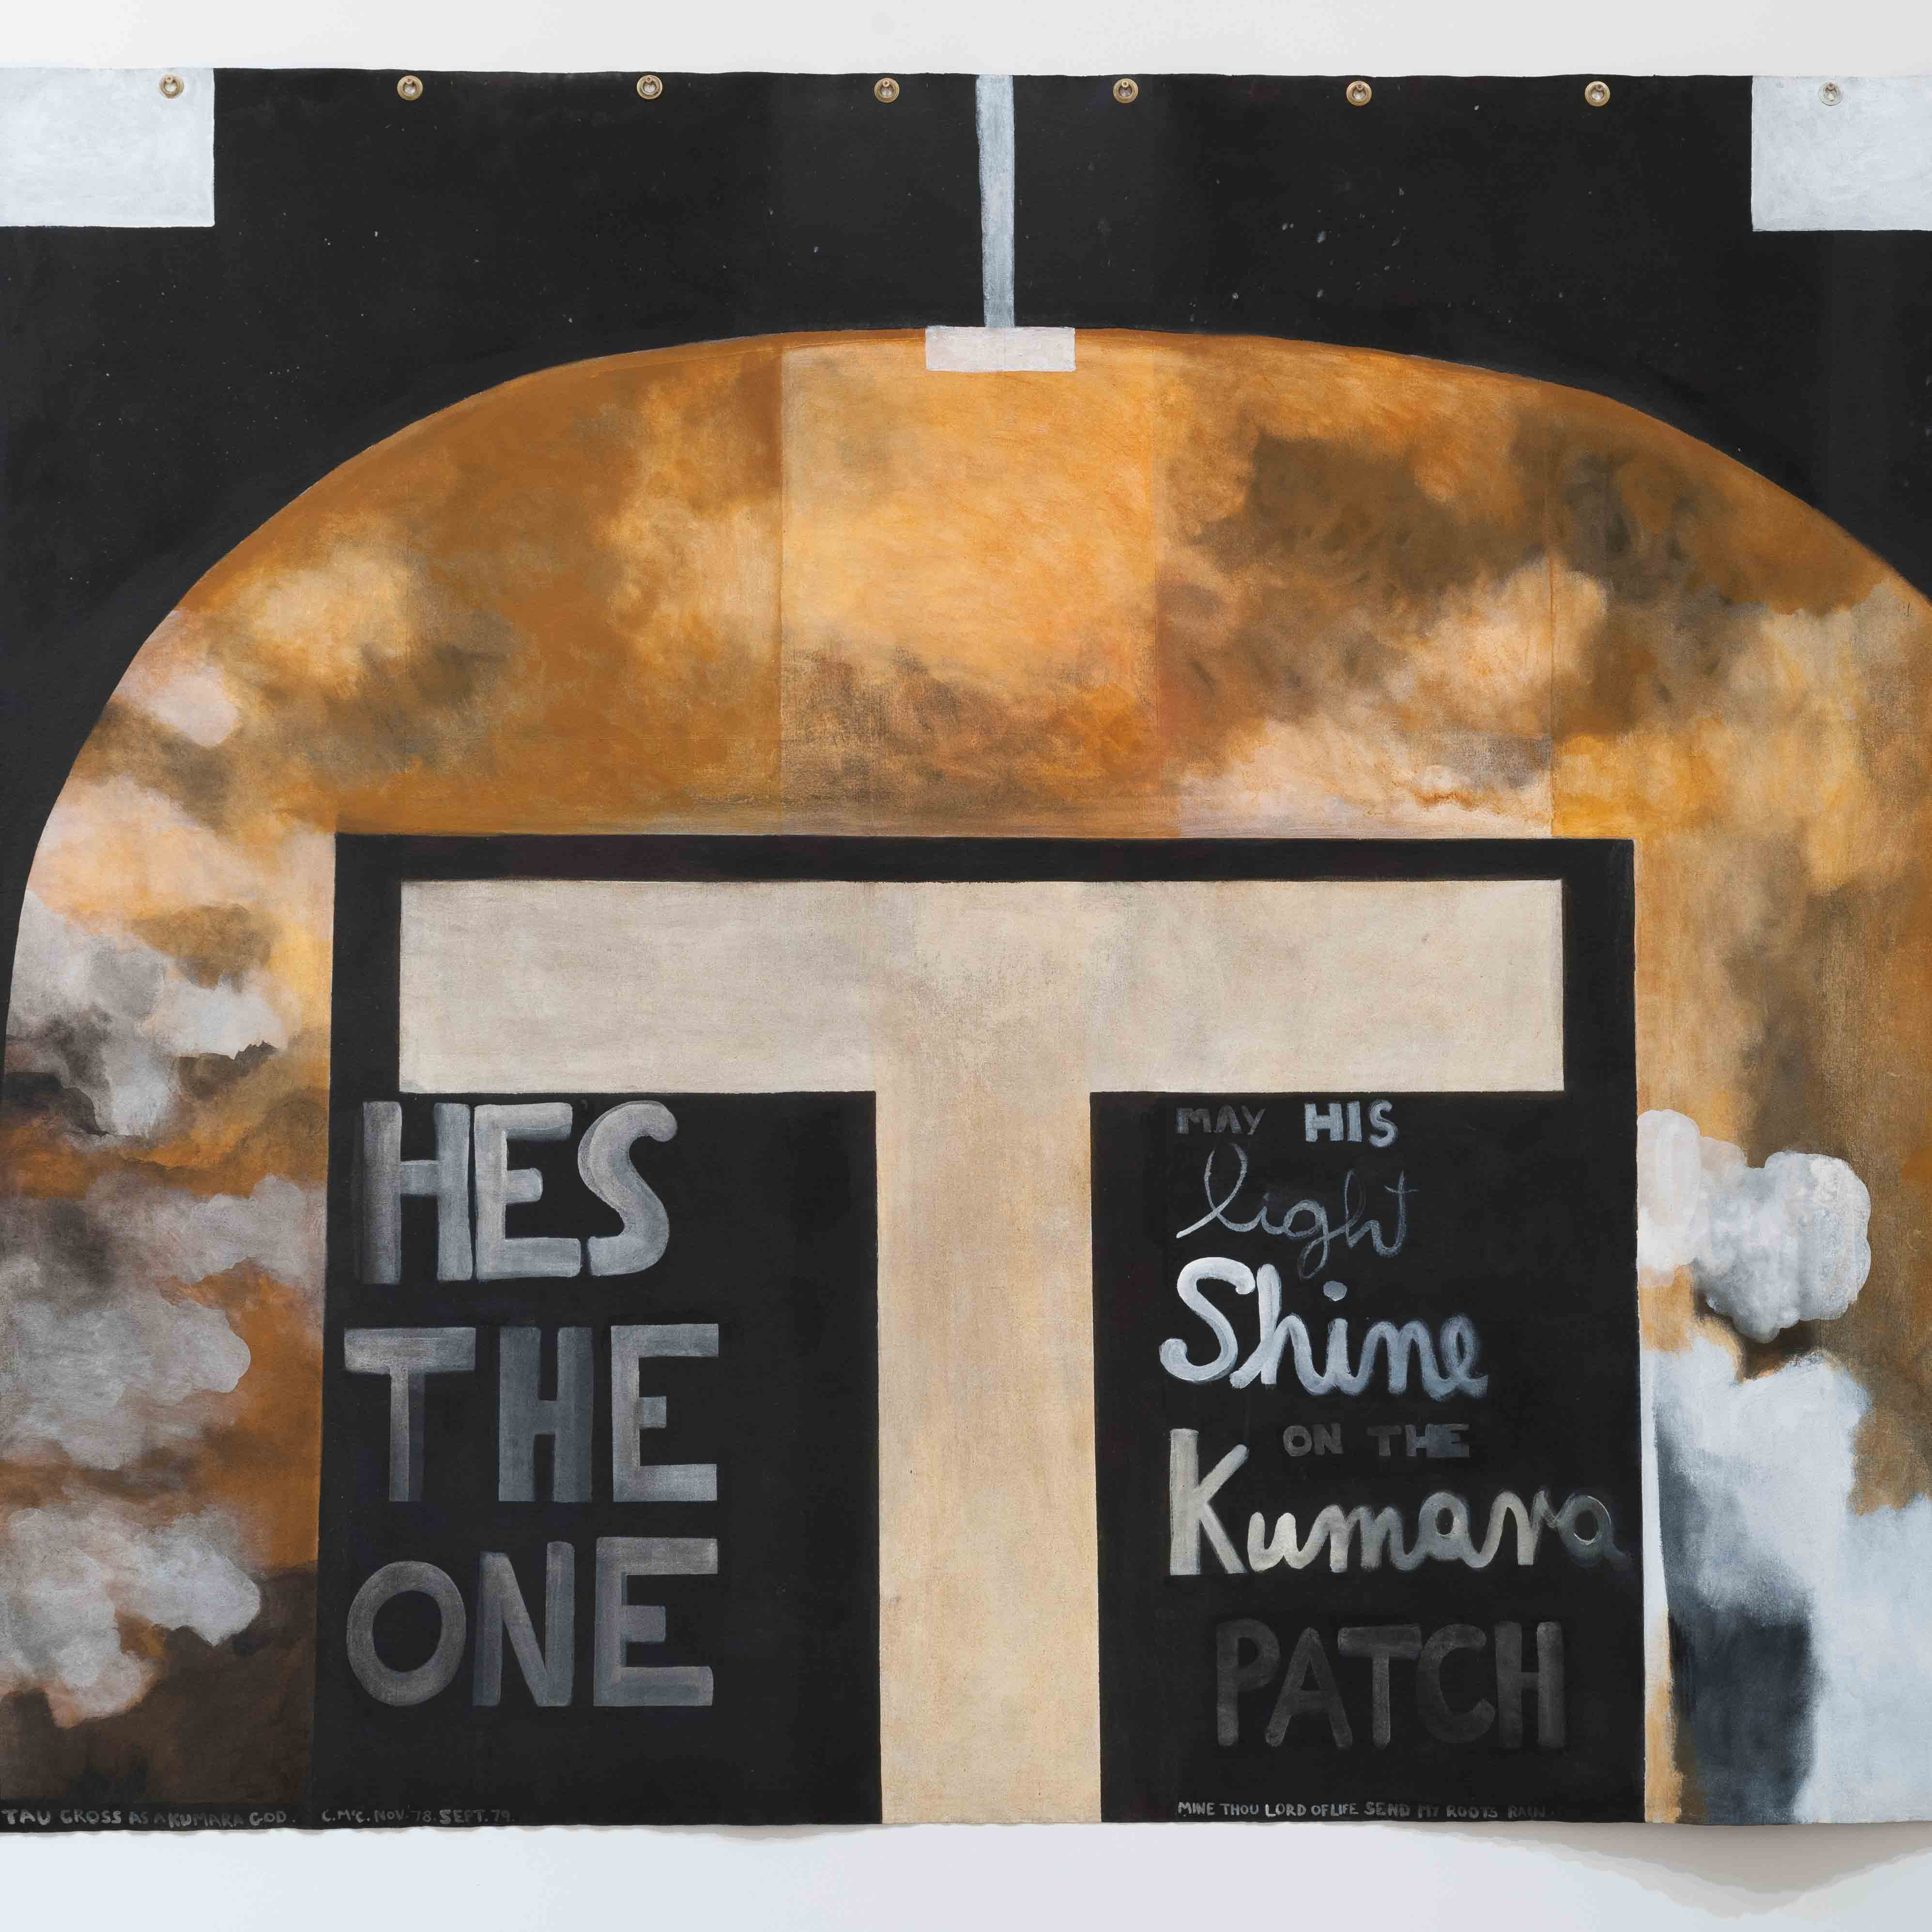 A Place to Paint: Colin McCahon in Auckland  Opens Saturday 10 August at Auckland Art Gallery Image